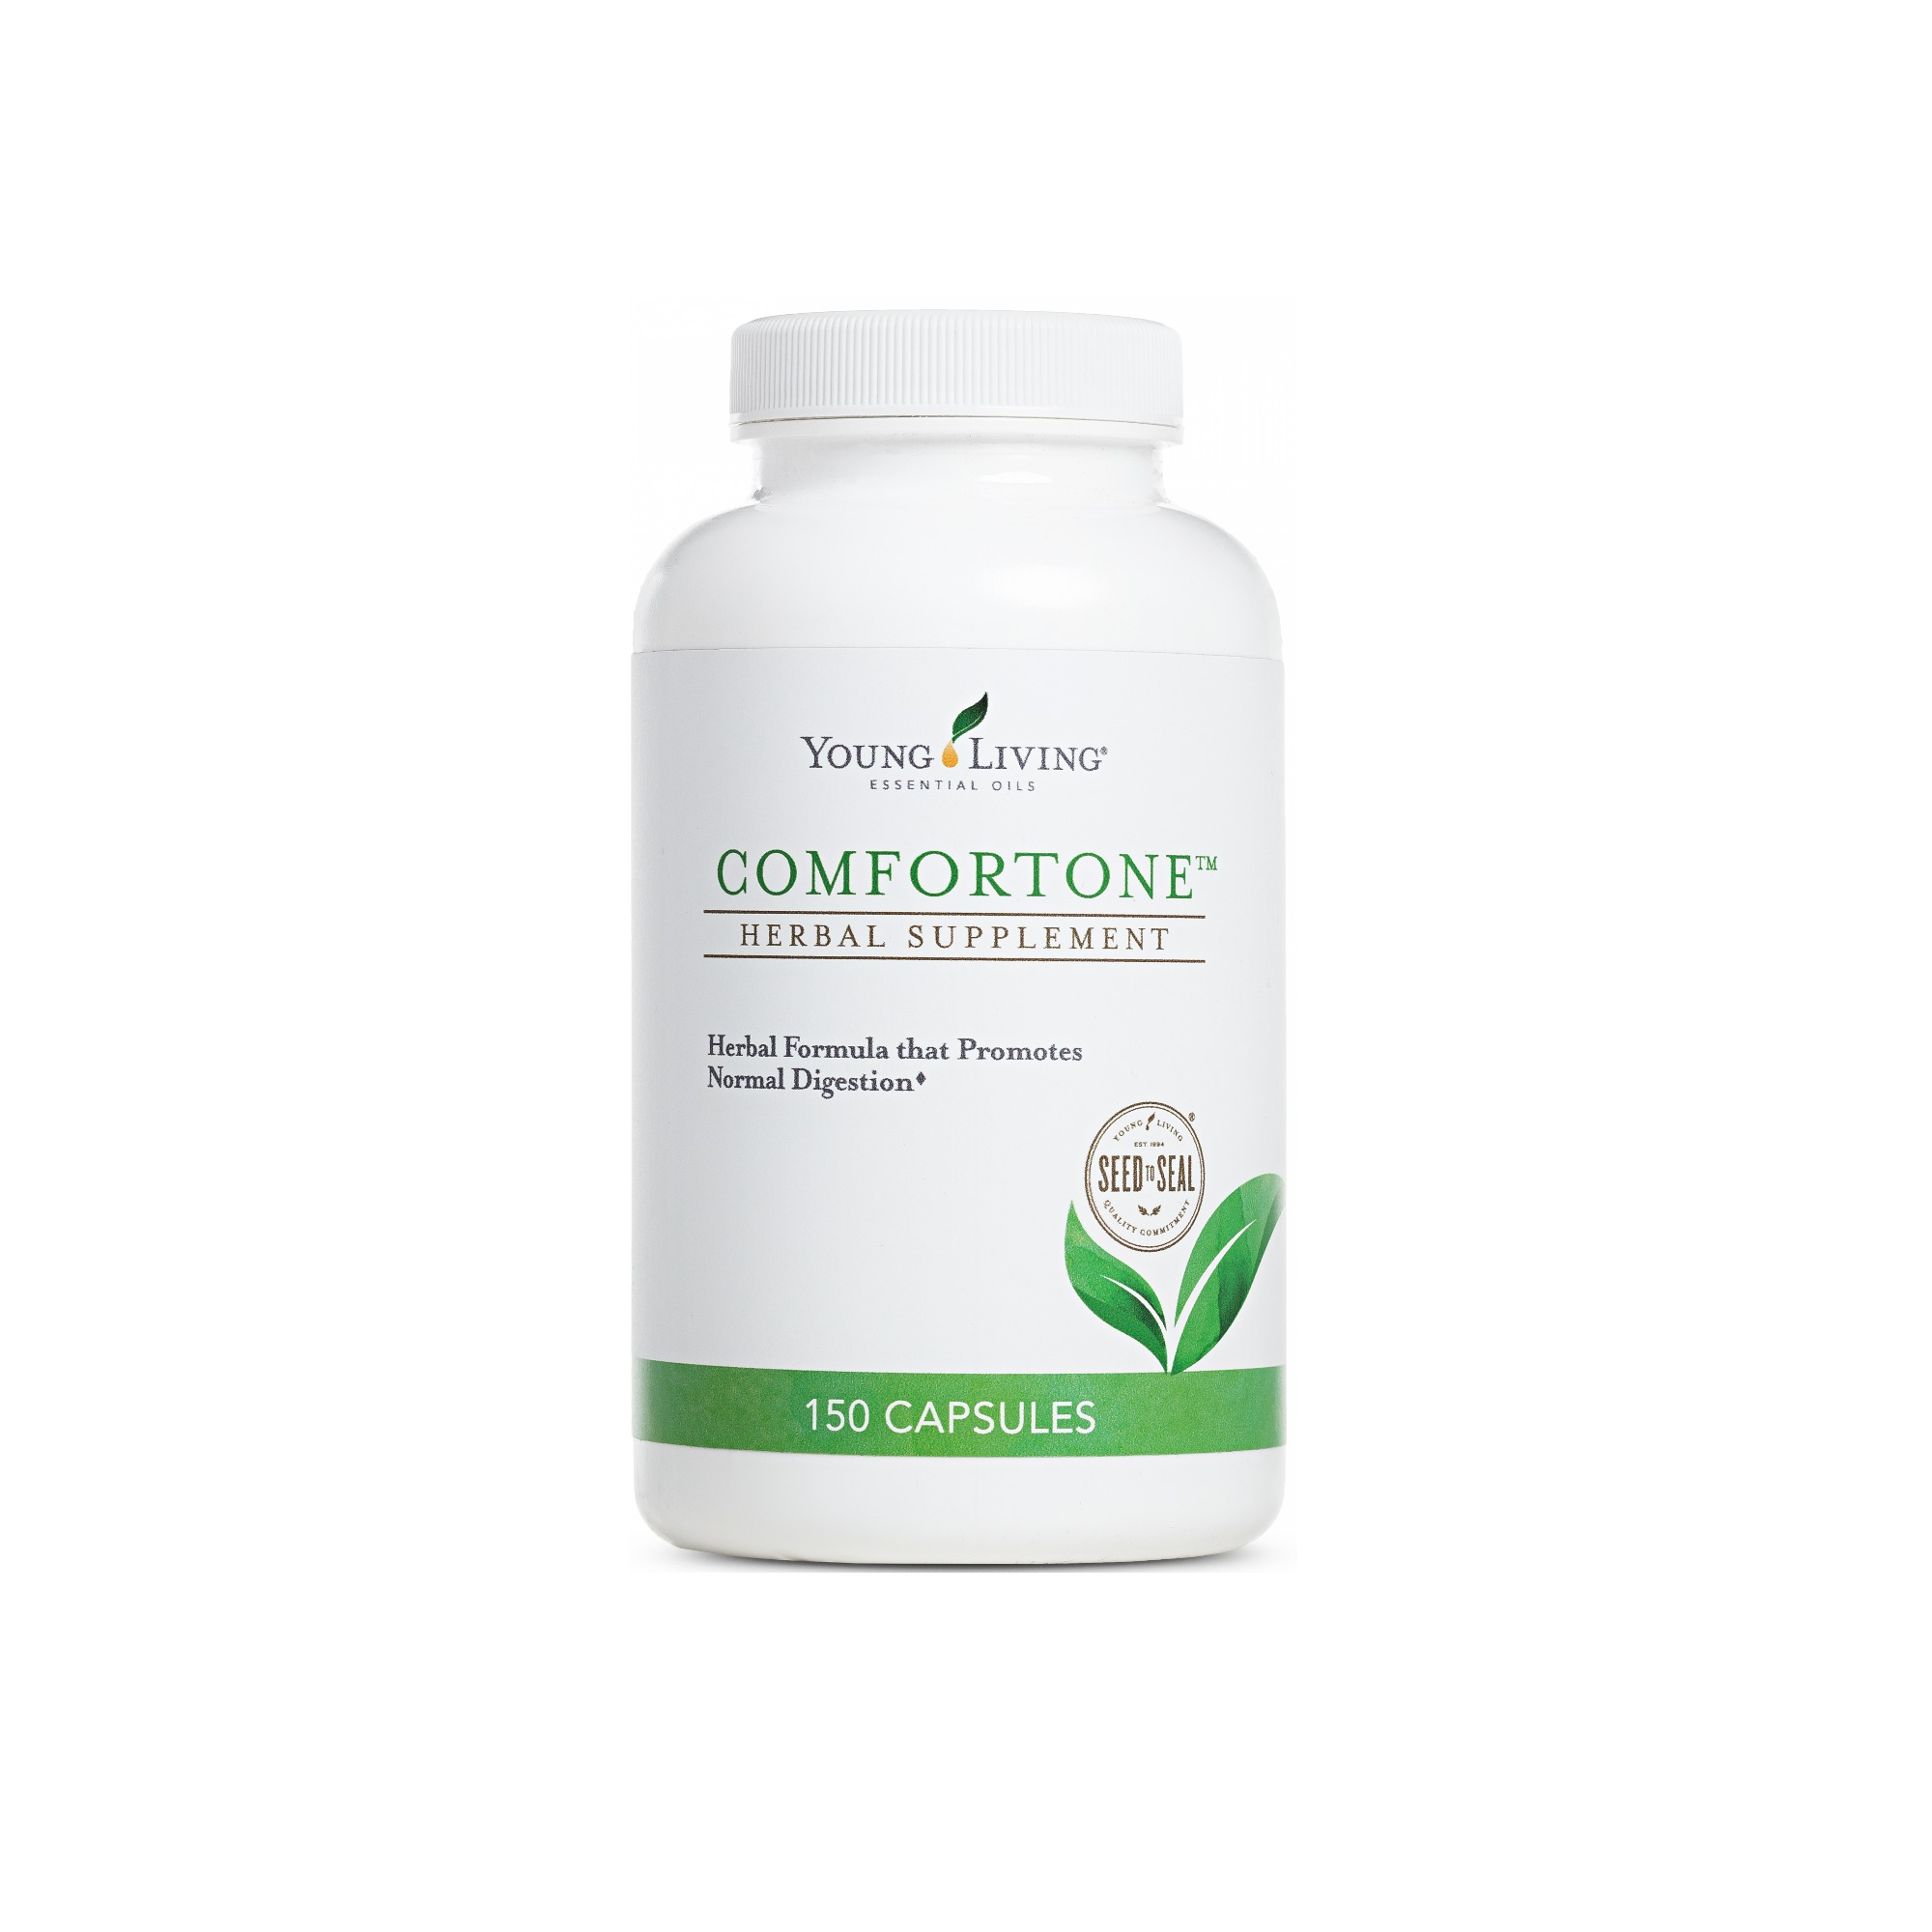 COMFORTONE    Comfortone provides a combination of natural herbs and essential oils that may support digestive health and wellness. Many like to interchange this supplement with ICP for a natural colon detox and cleanse. Comforttone also supports normal peristalsis (the wave-like contractions that move food through the intestines), and therefore strengthens systems that delivers nutrients to the rest of the body. It also contains ingredients that are beneficial to liver, gall bladder, and stomach health.   Click here   to learn more about this product.